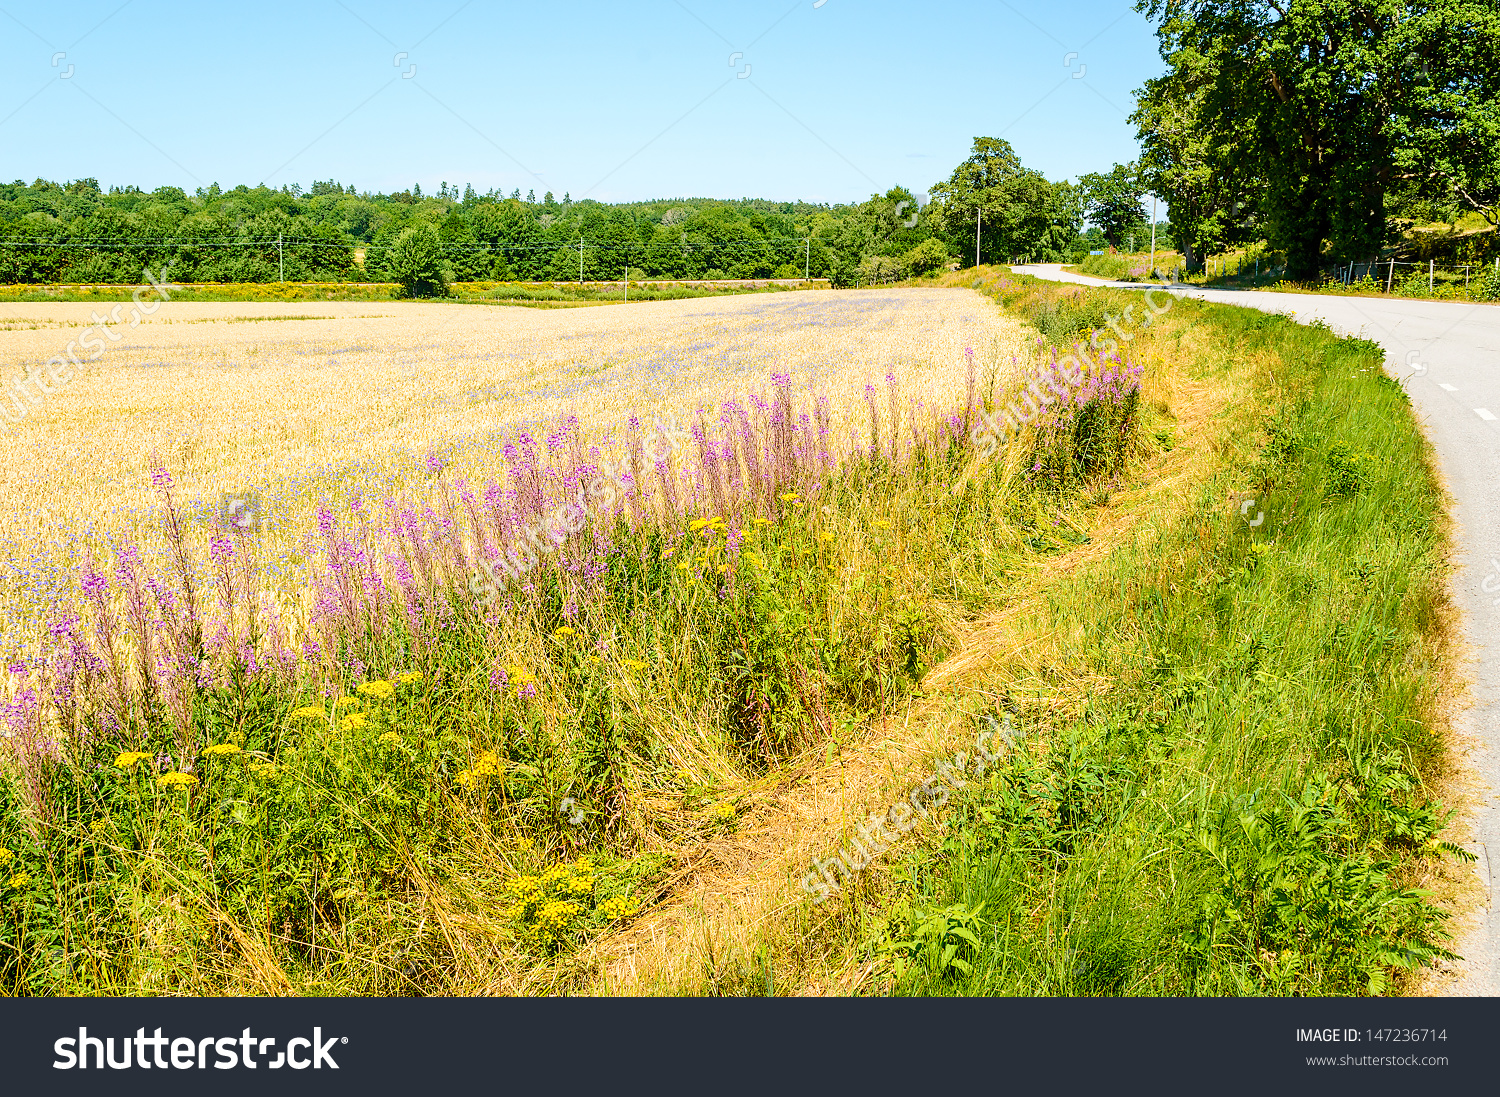 Roadside Maintenance By Cutting Grass And Weeds Along Side Road.